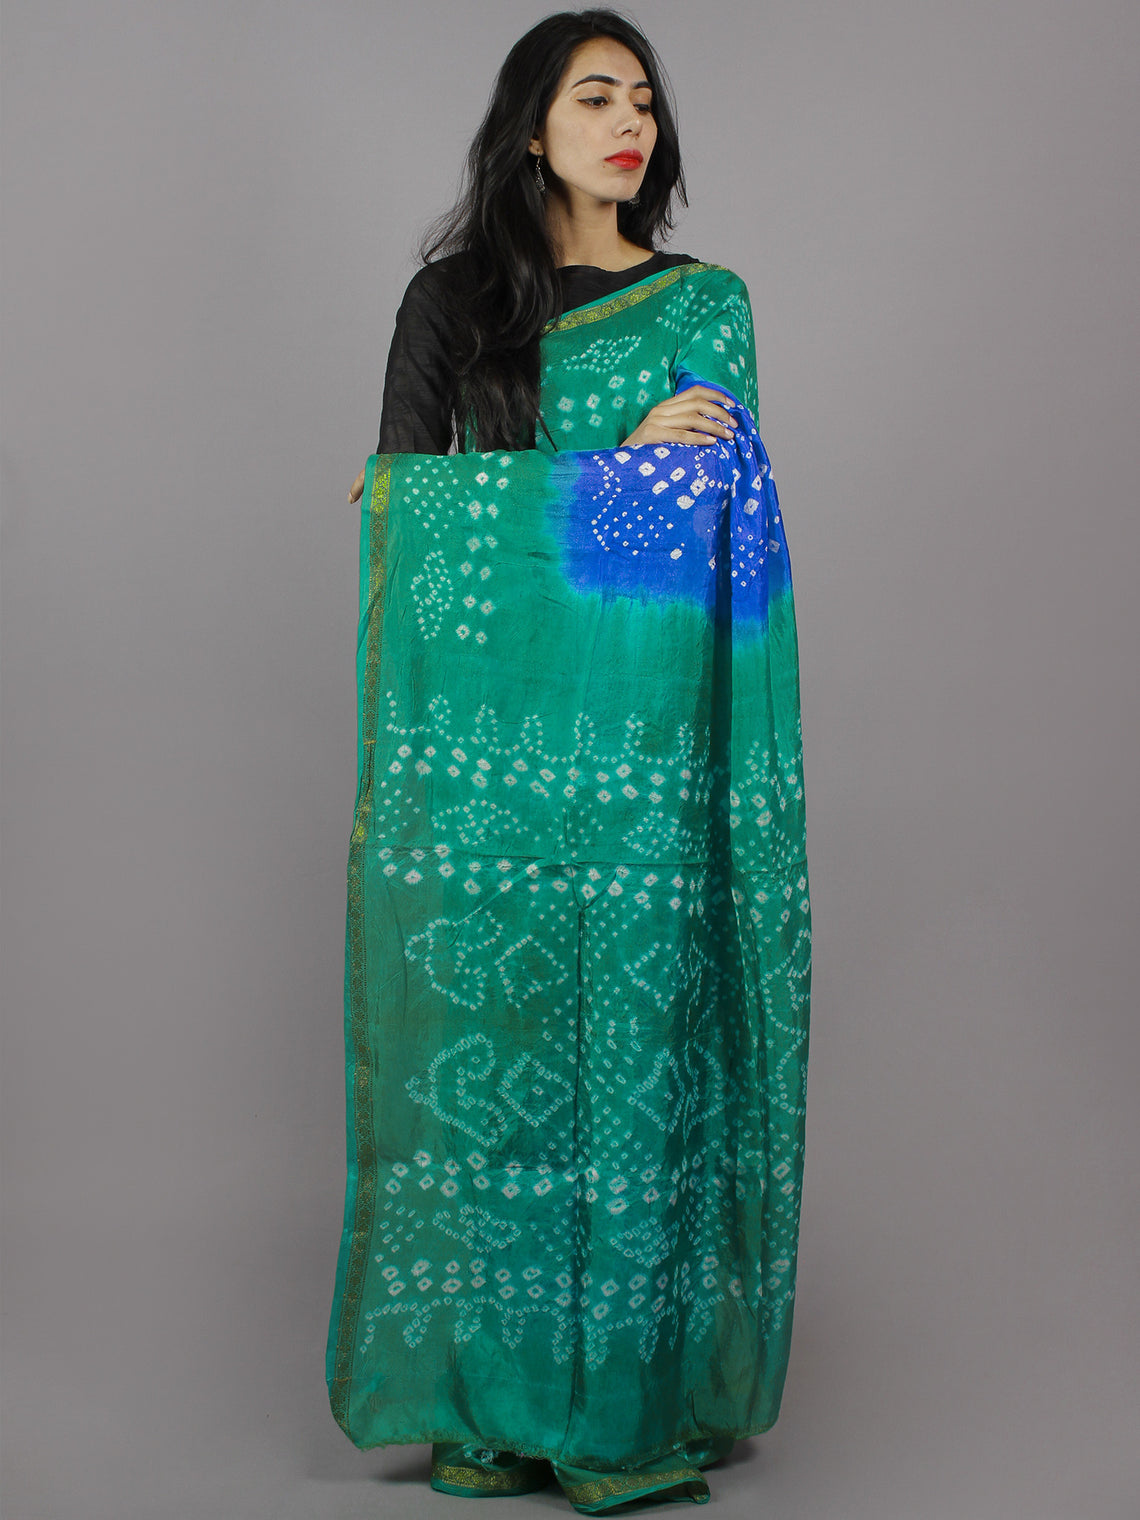 Blue Green Ivory Hand Tie & Dye Bandhej Art Silk Saree - S031701319